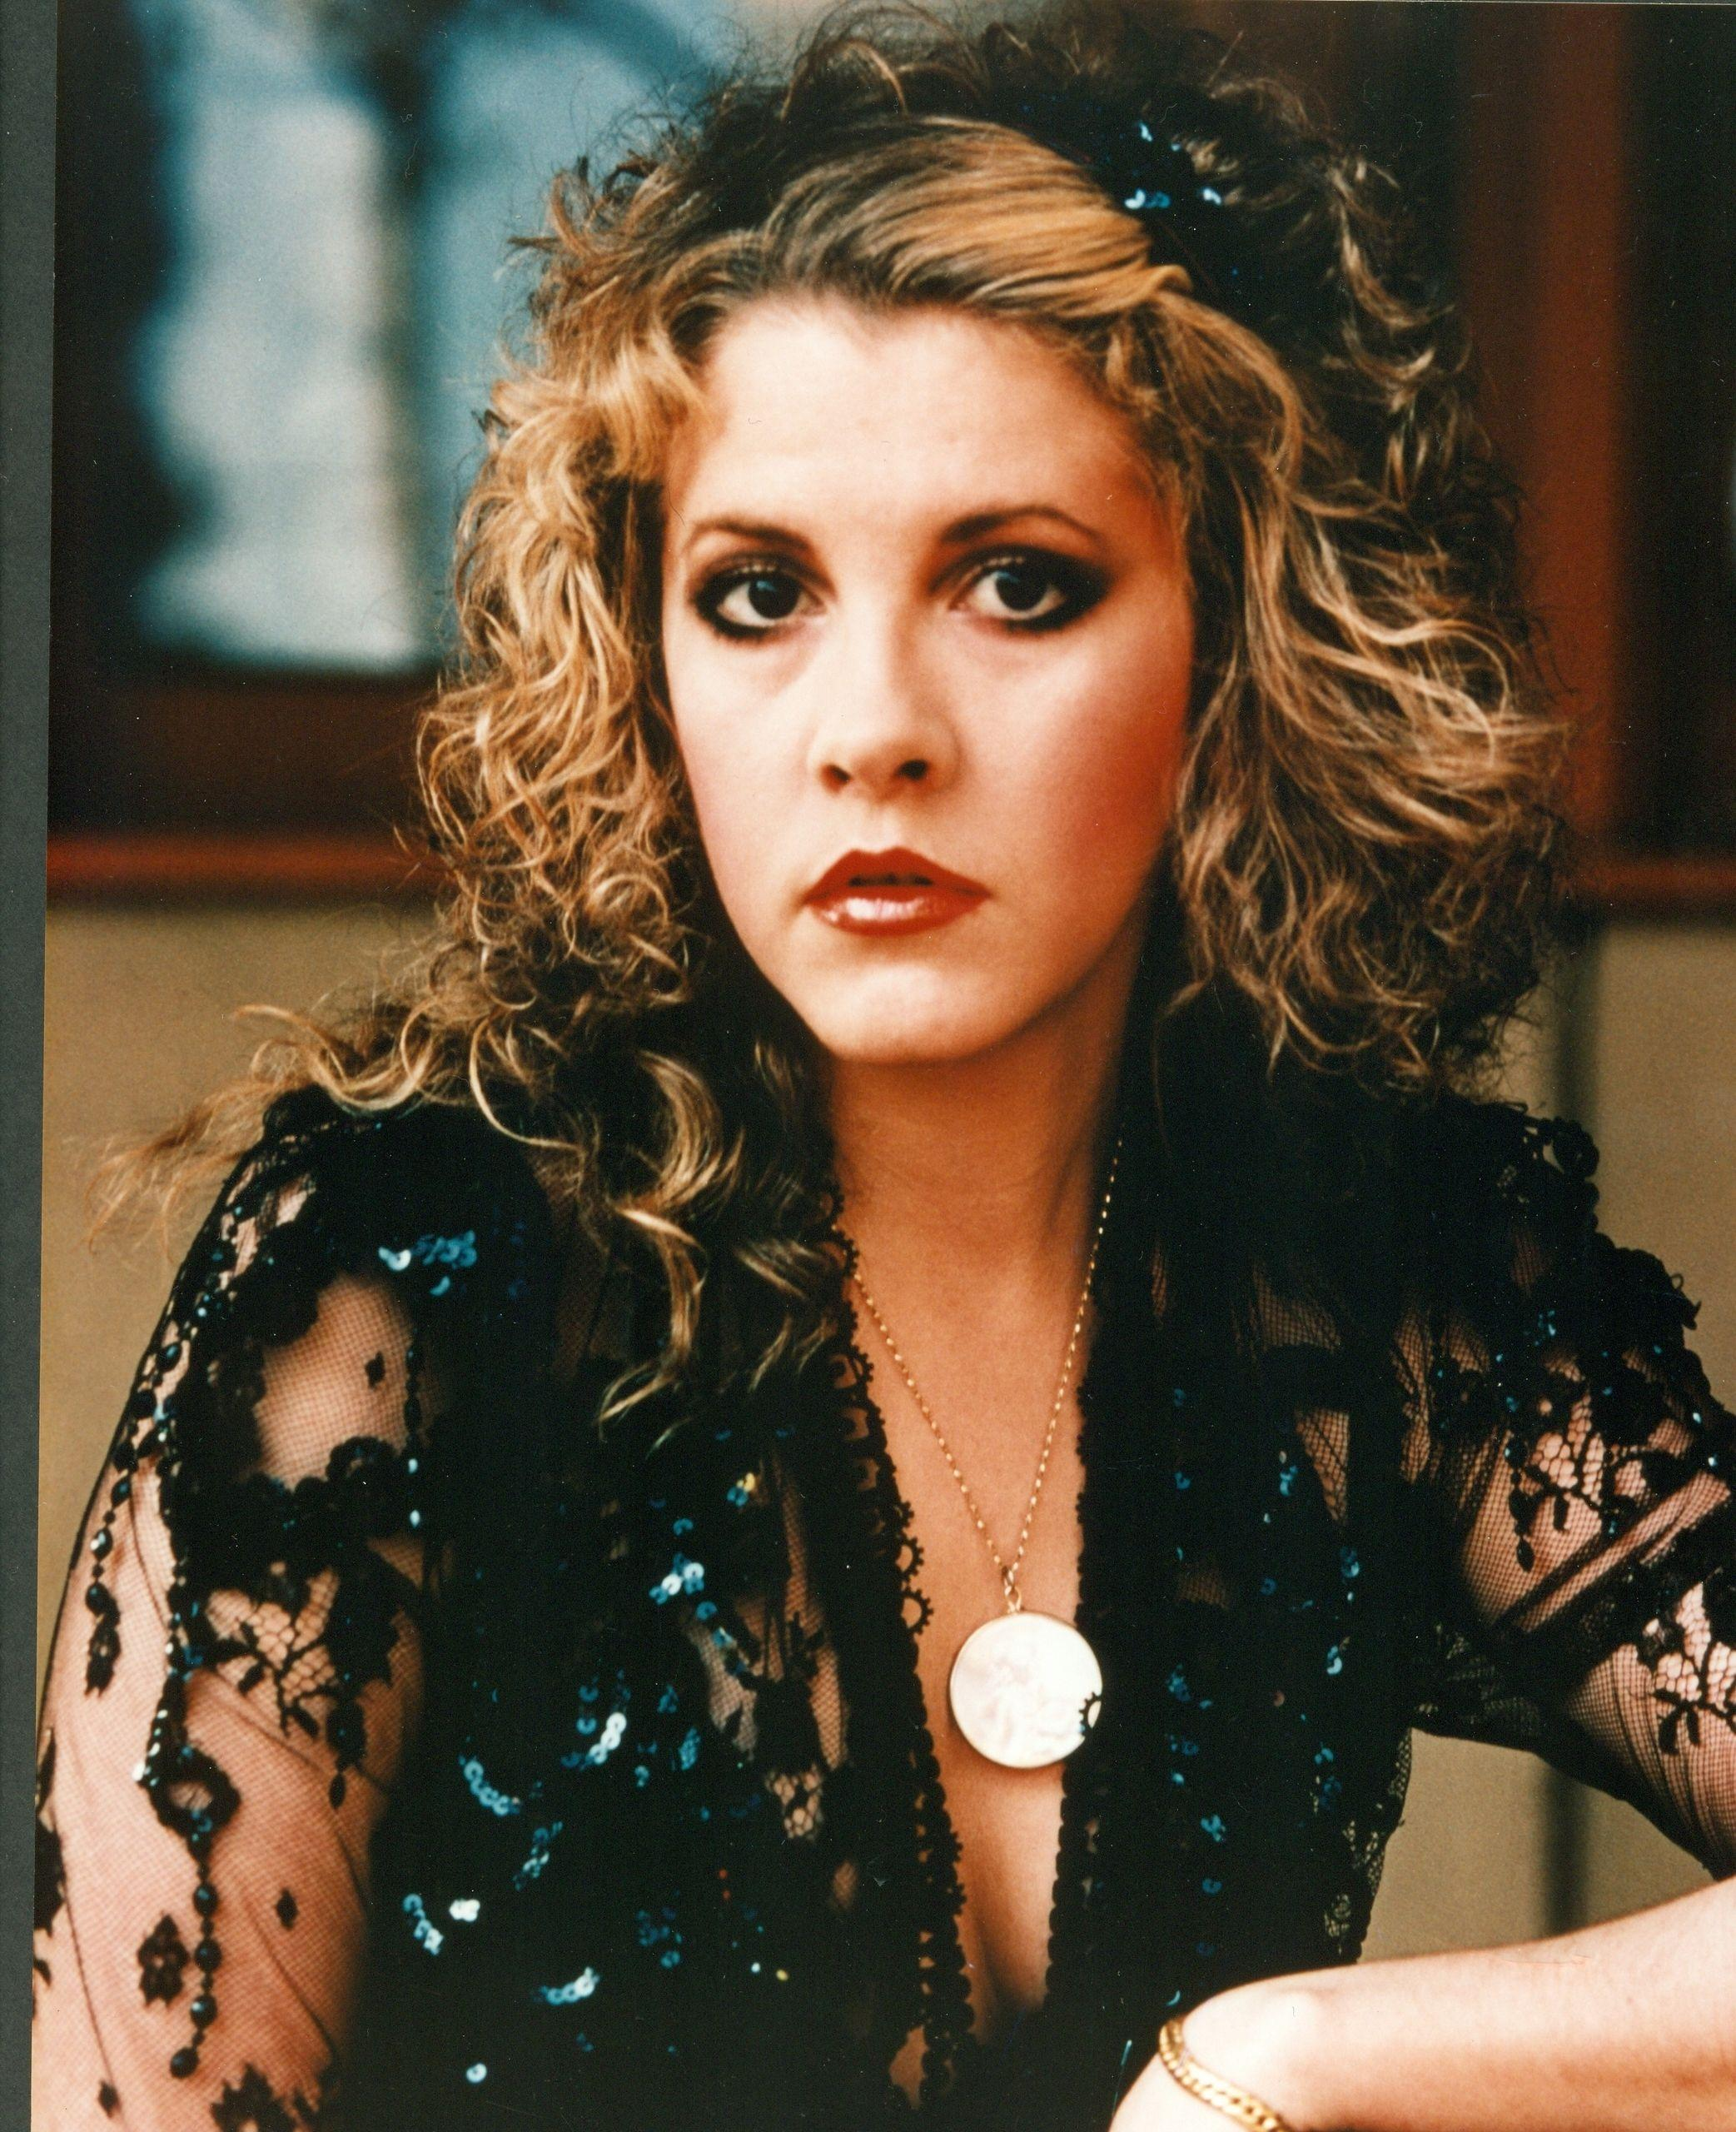 Gallery For > Stevie Nicks Wallpapers